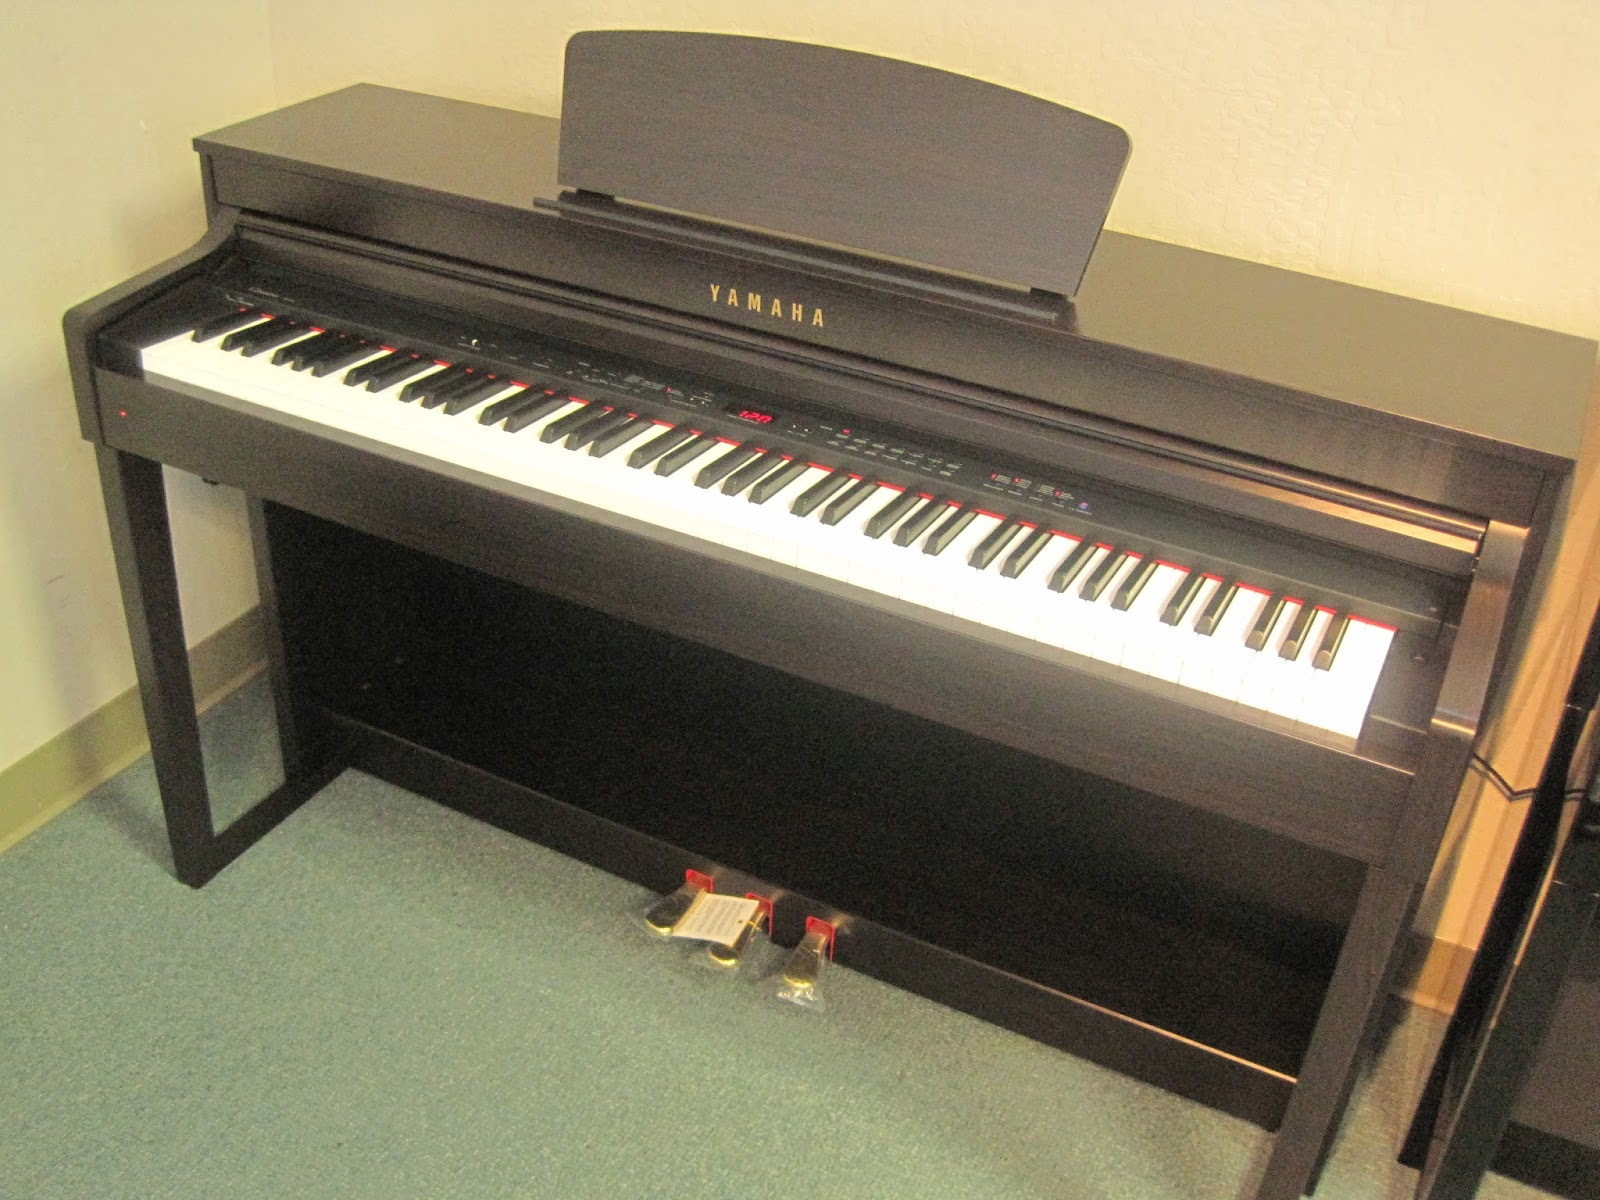 az piano reviews review yamaha clp430 clp440 clp470 clp480 clavinova digital pianos. Black Bedroom Furniture Sets. Home Design Ideas